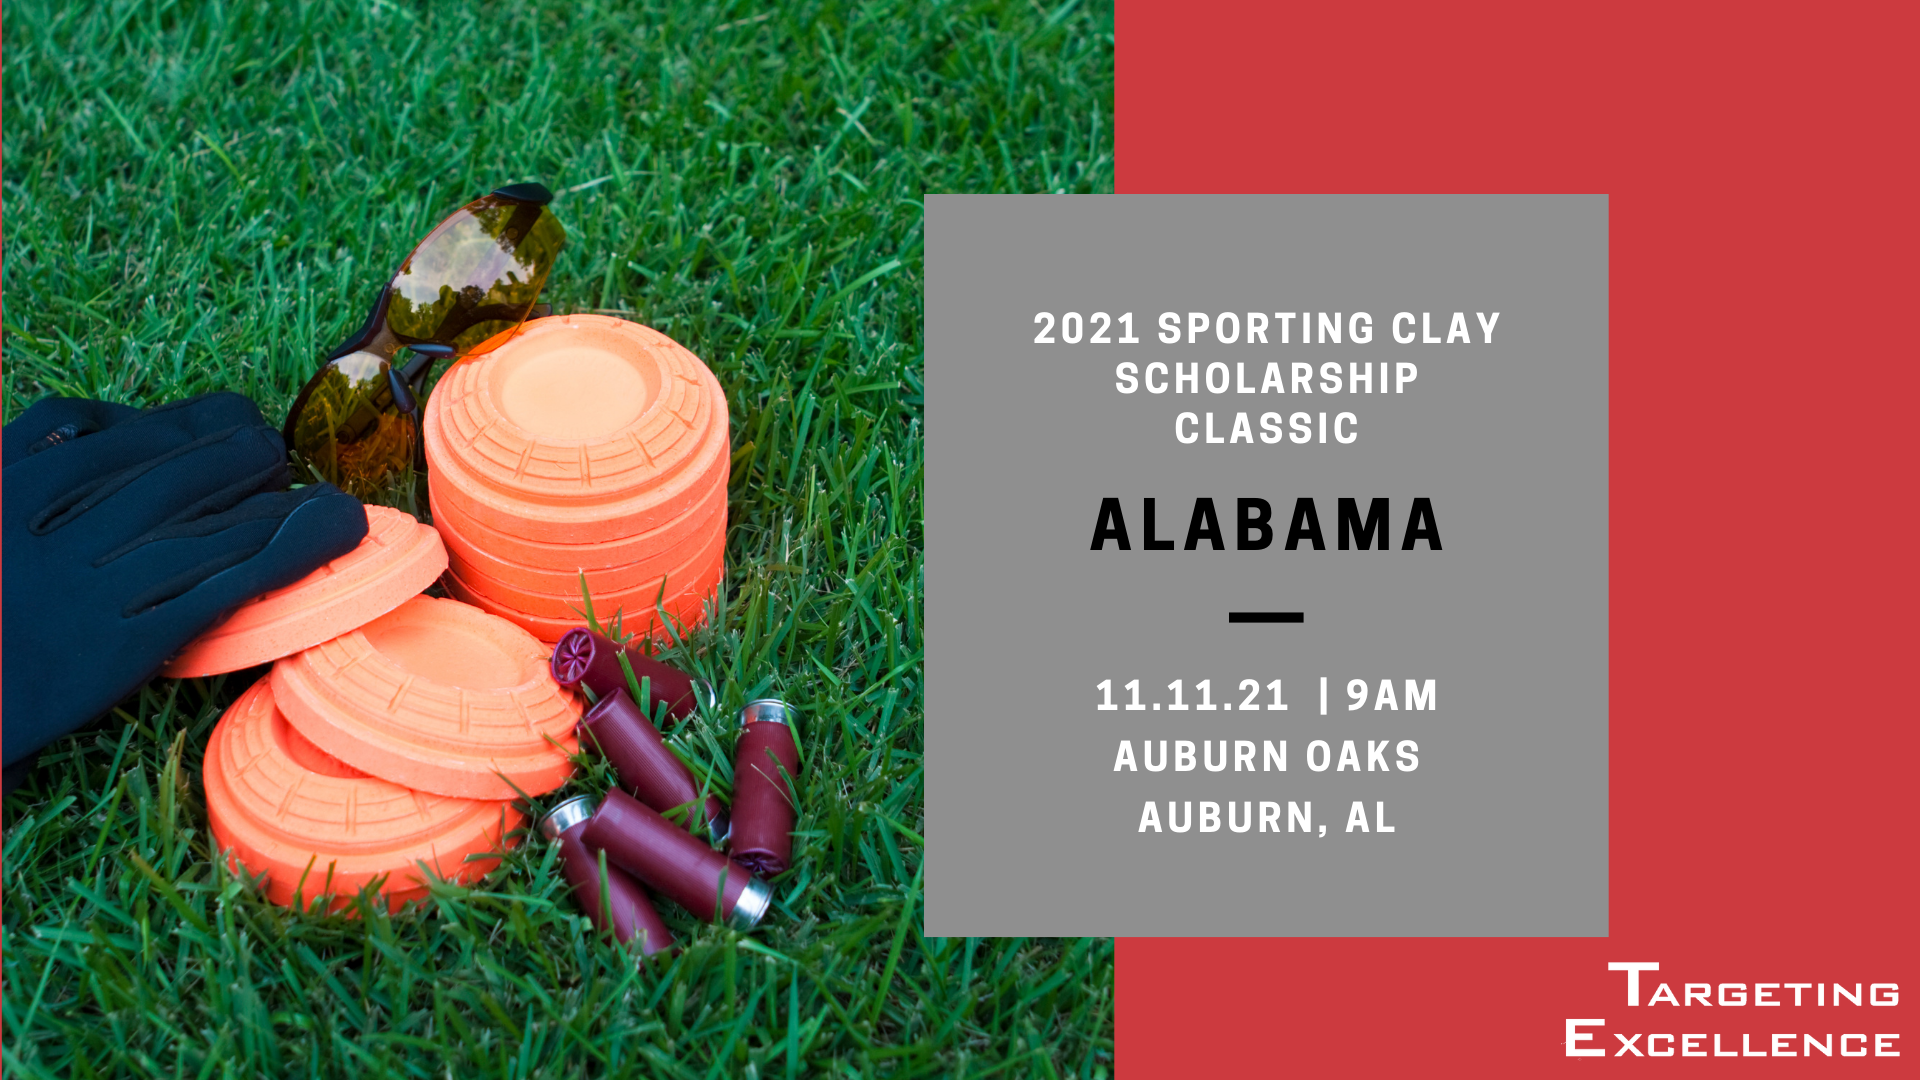 2021 Alabama Targeting Excellence Sporting Clay Scholarship Classic